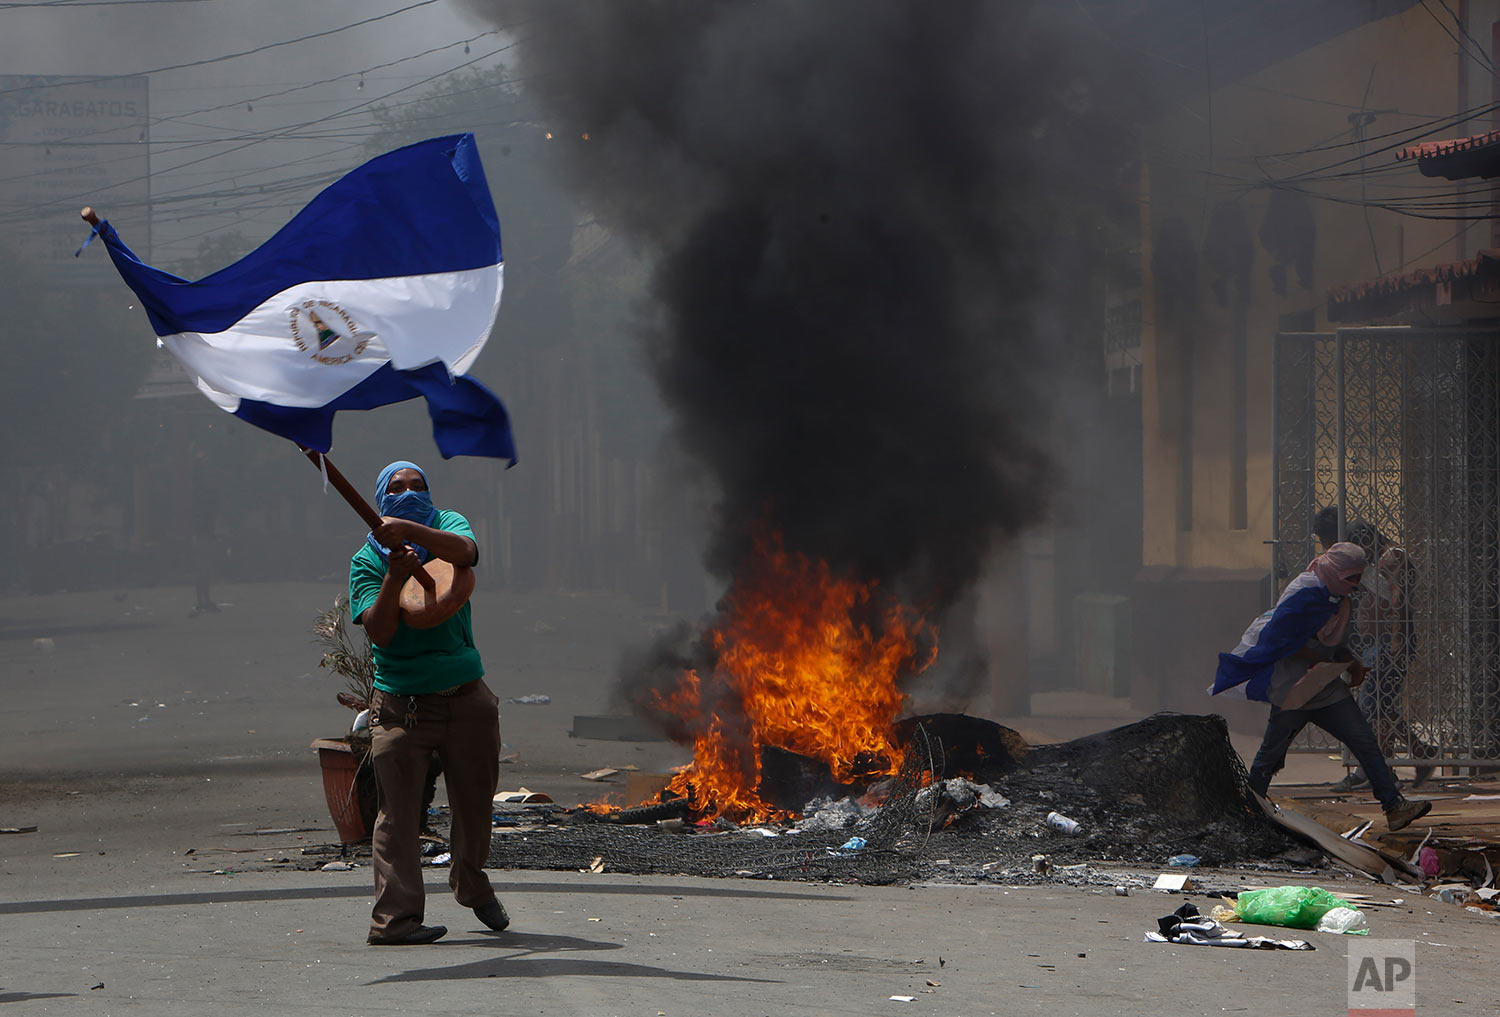 A protestor waves a Nicaraguan national flag at a burning roadblock as protestors clash with police in the Monimbo district of Masaya, Nicaragua, Saturday, May 12, 2018. Protests began in April as students demonstrated against a social security reform. Many are now demanding that President Daniel Ortega and his wife Rosario Murillo leave office. (AP Photo/Alfredo Zuniga)